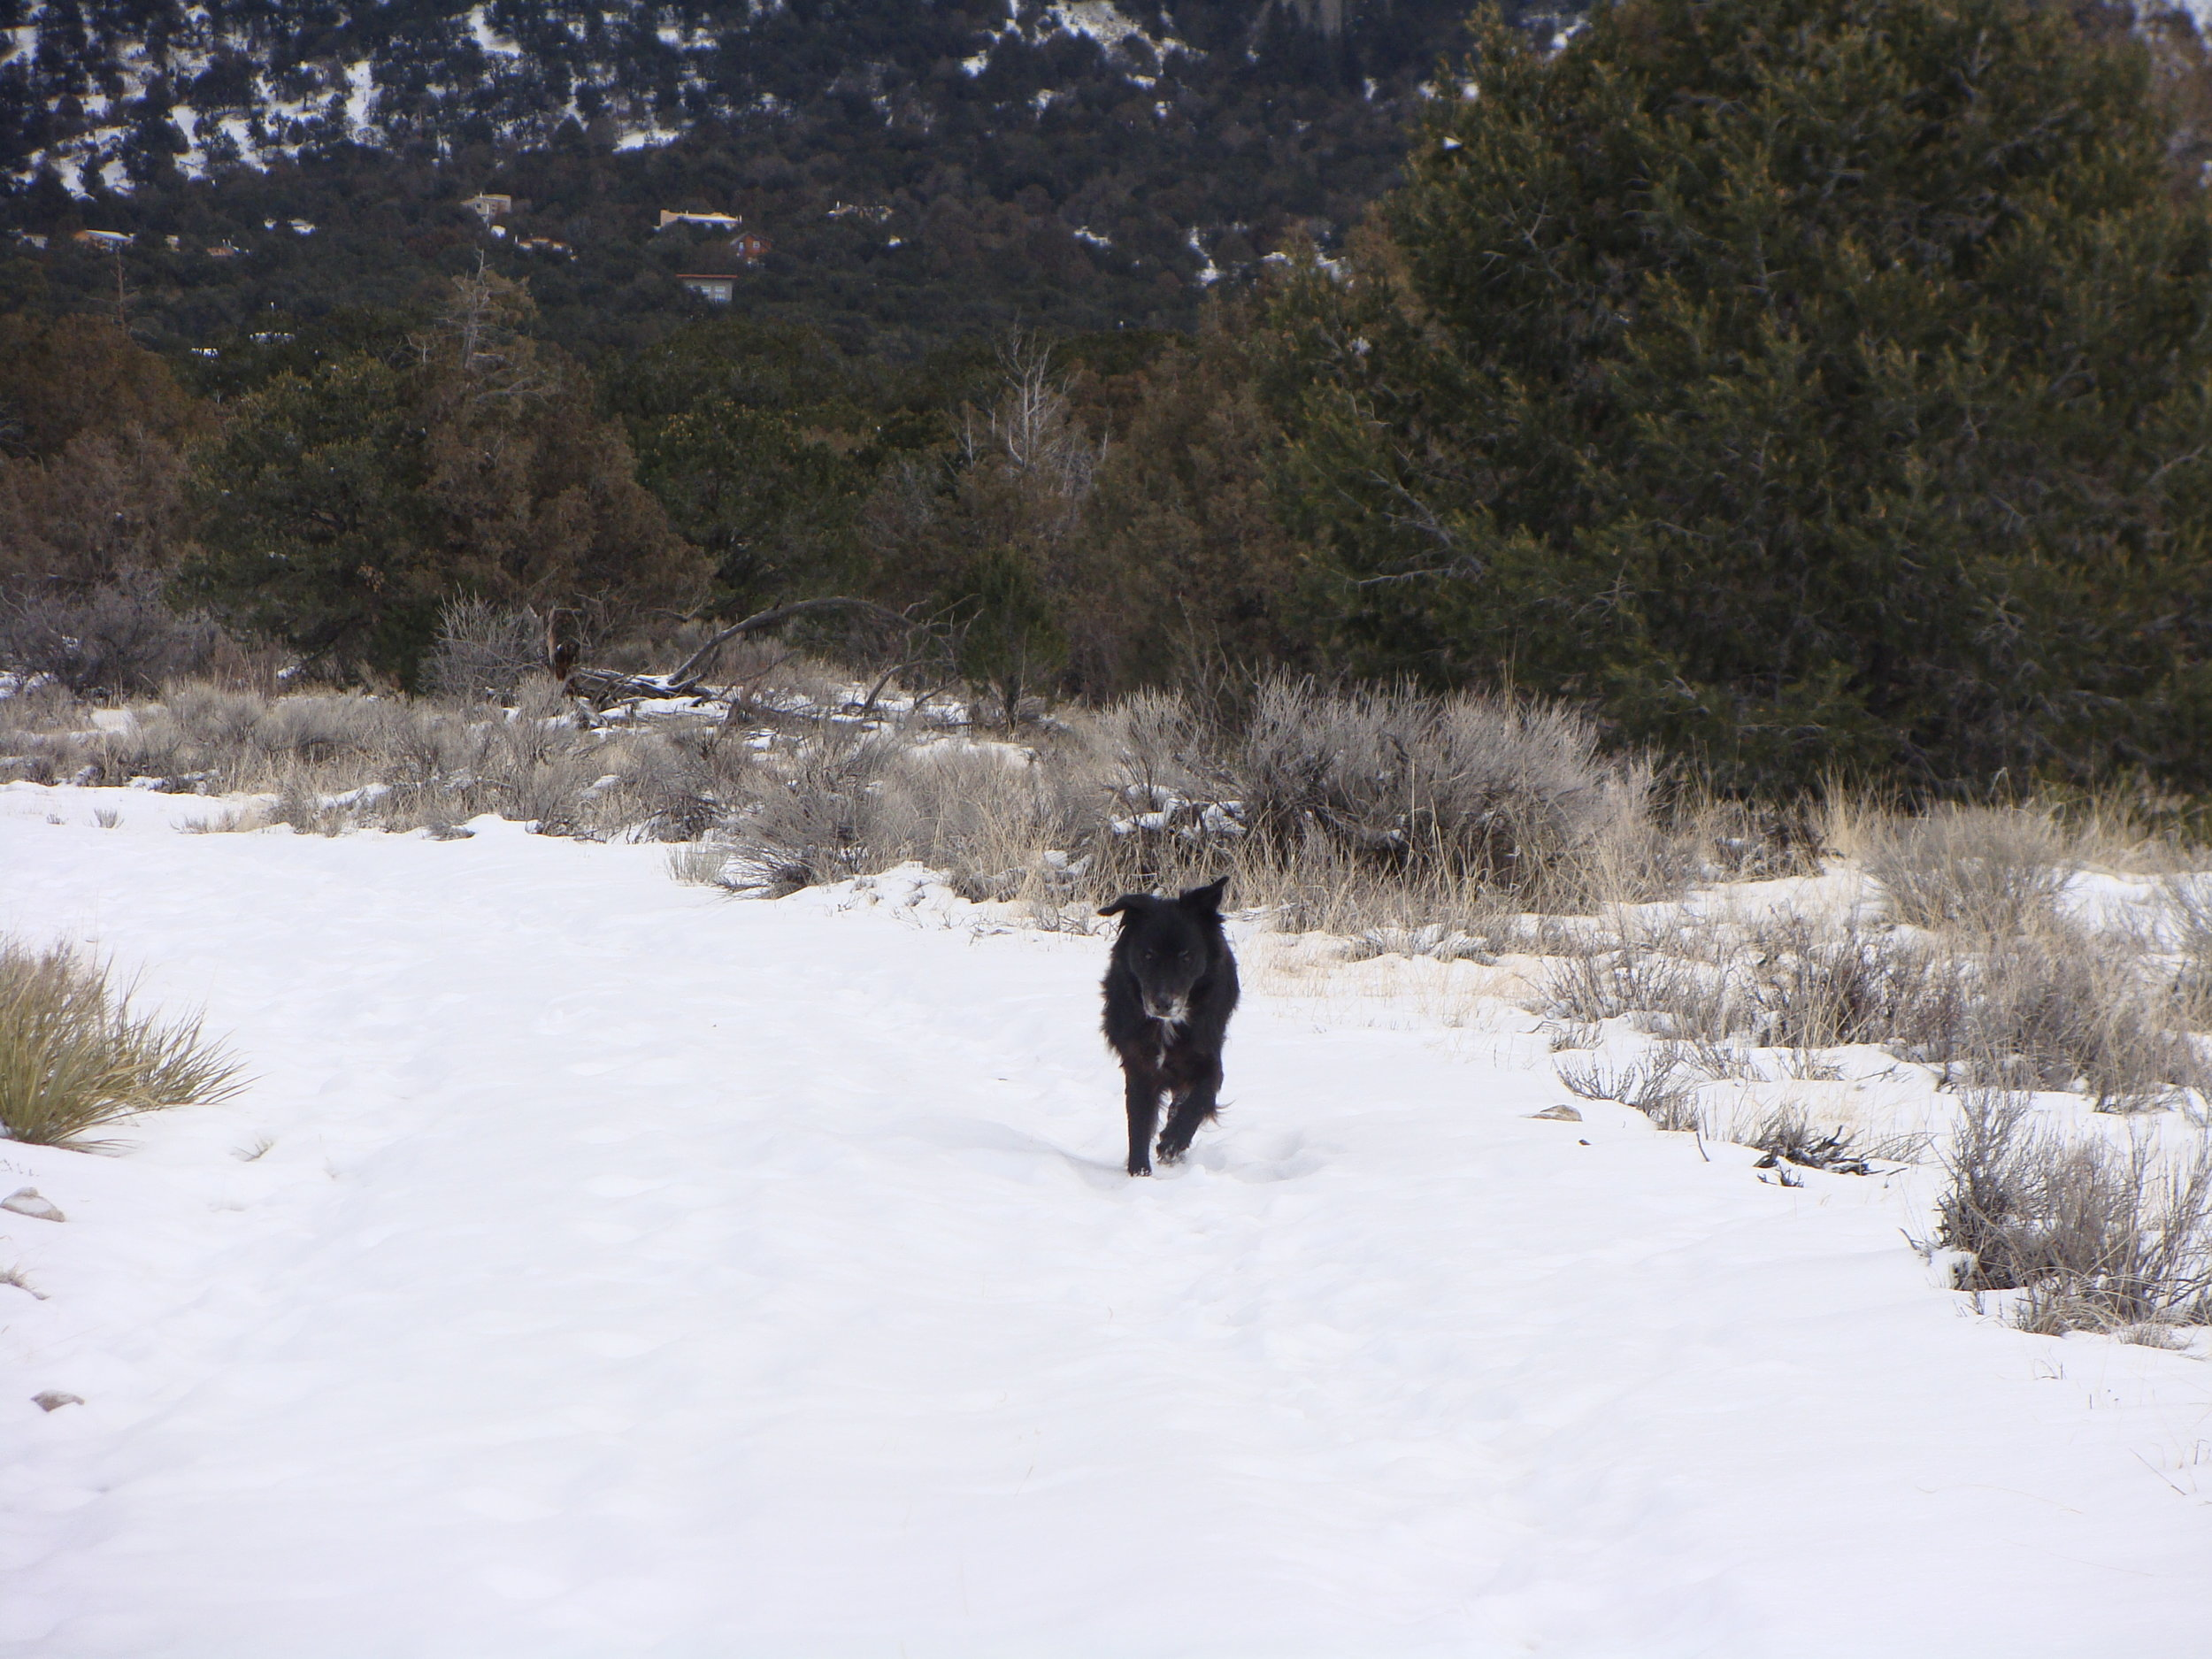 Cool Hand Luke says 'A run in the snow is always a good aim!'